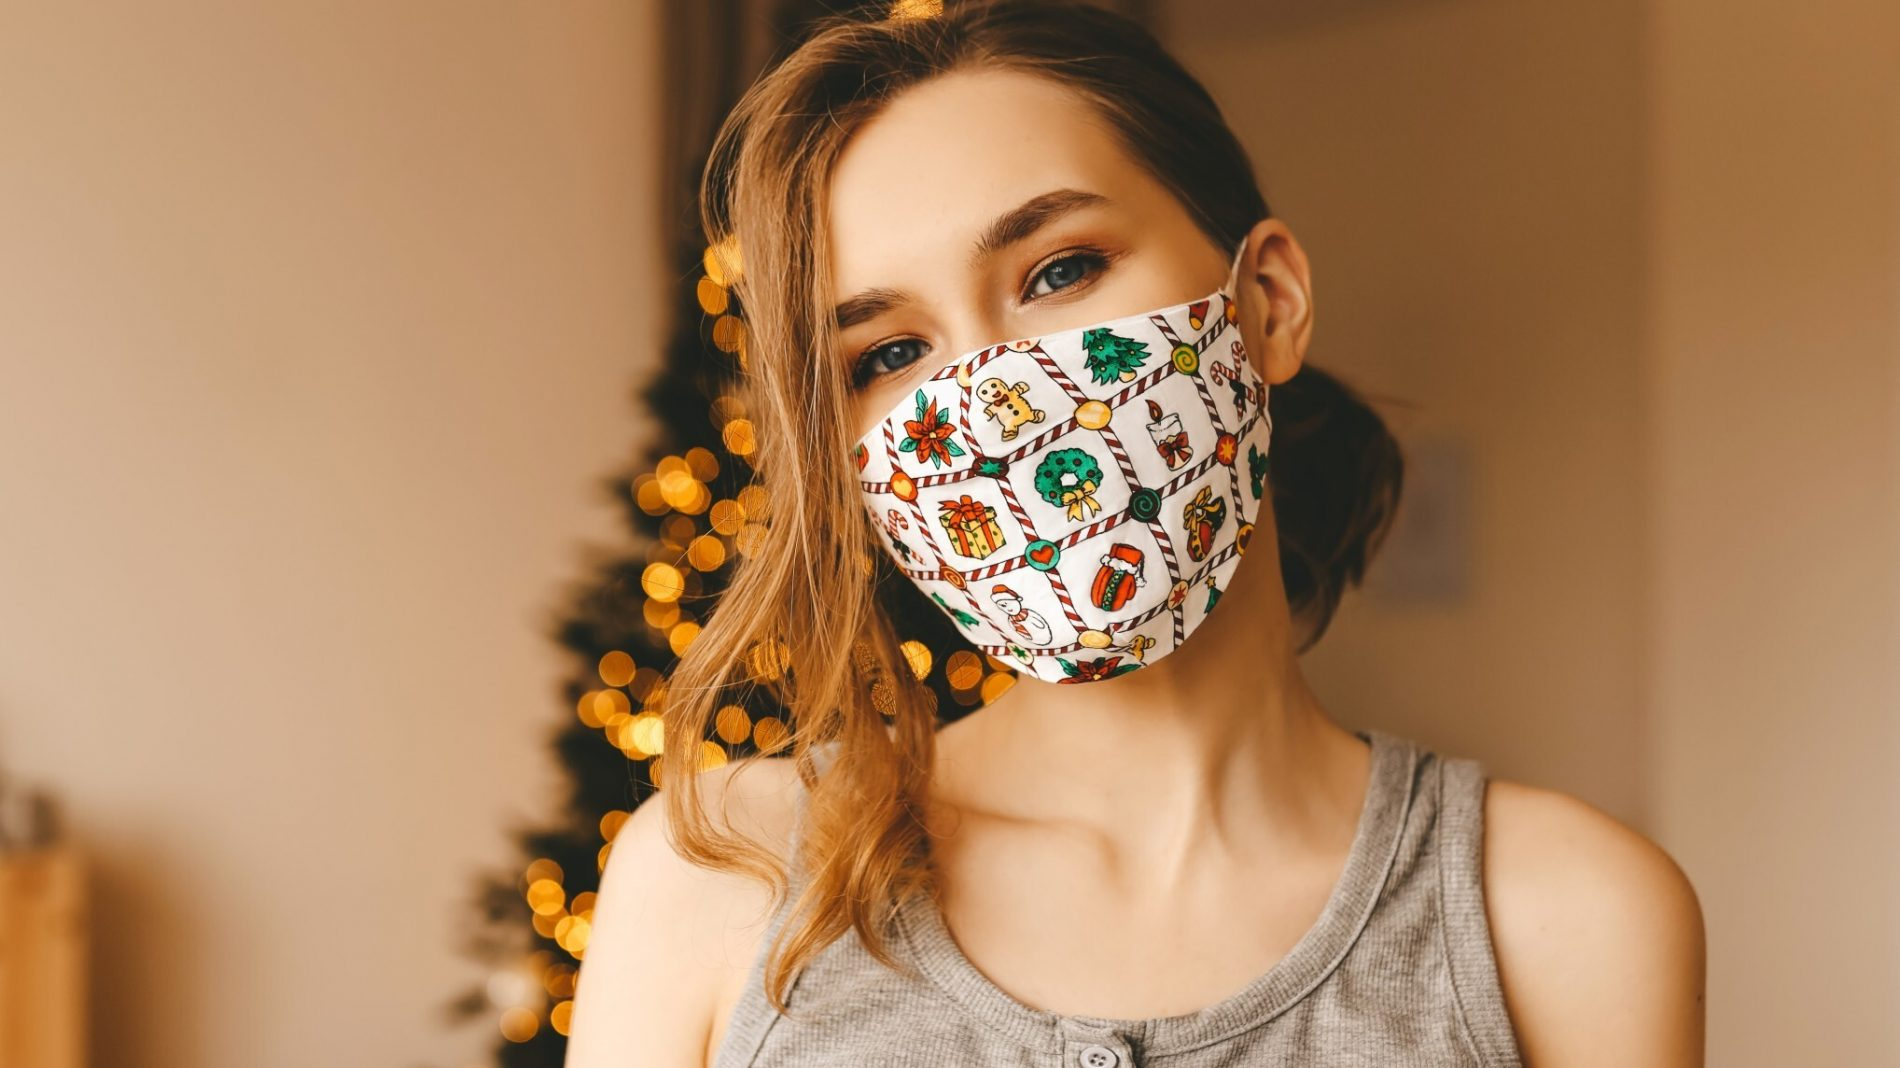 A young woman wearing a face mask in front of a Christmas tree